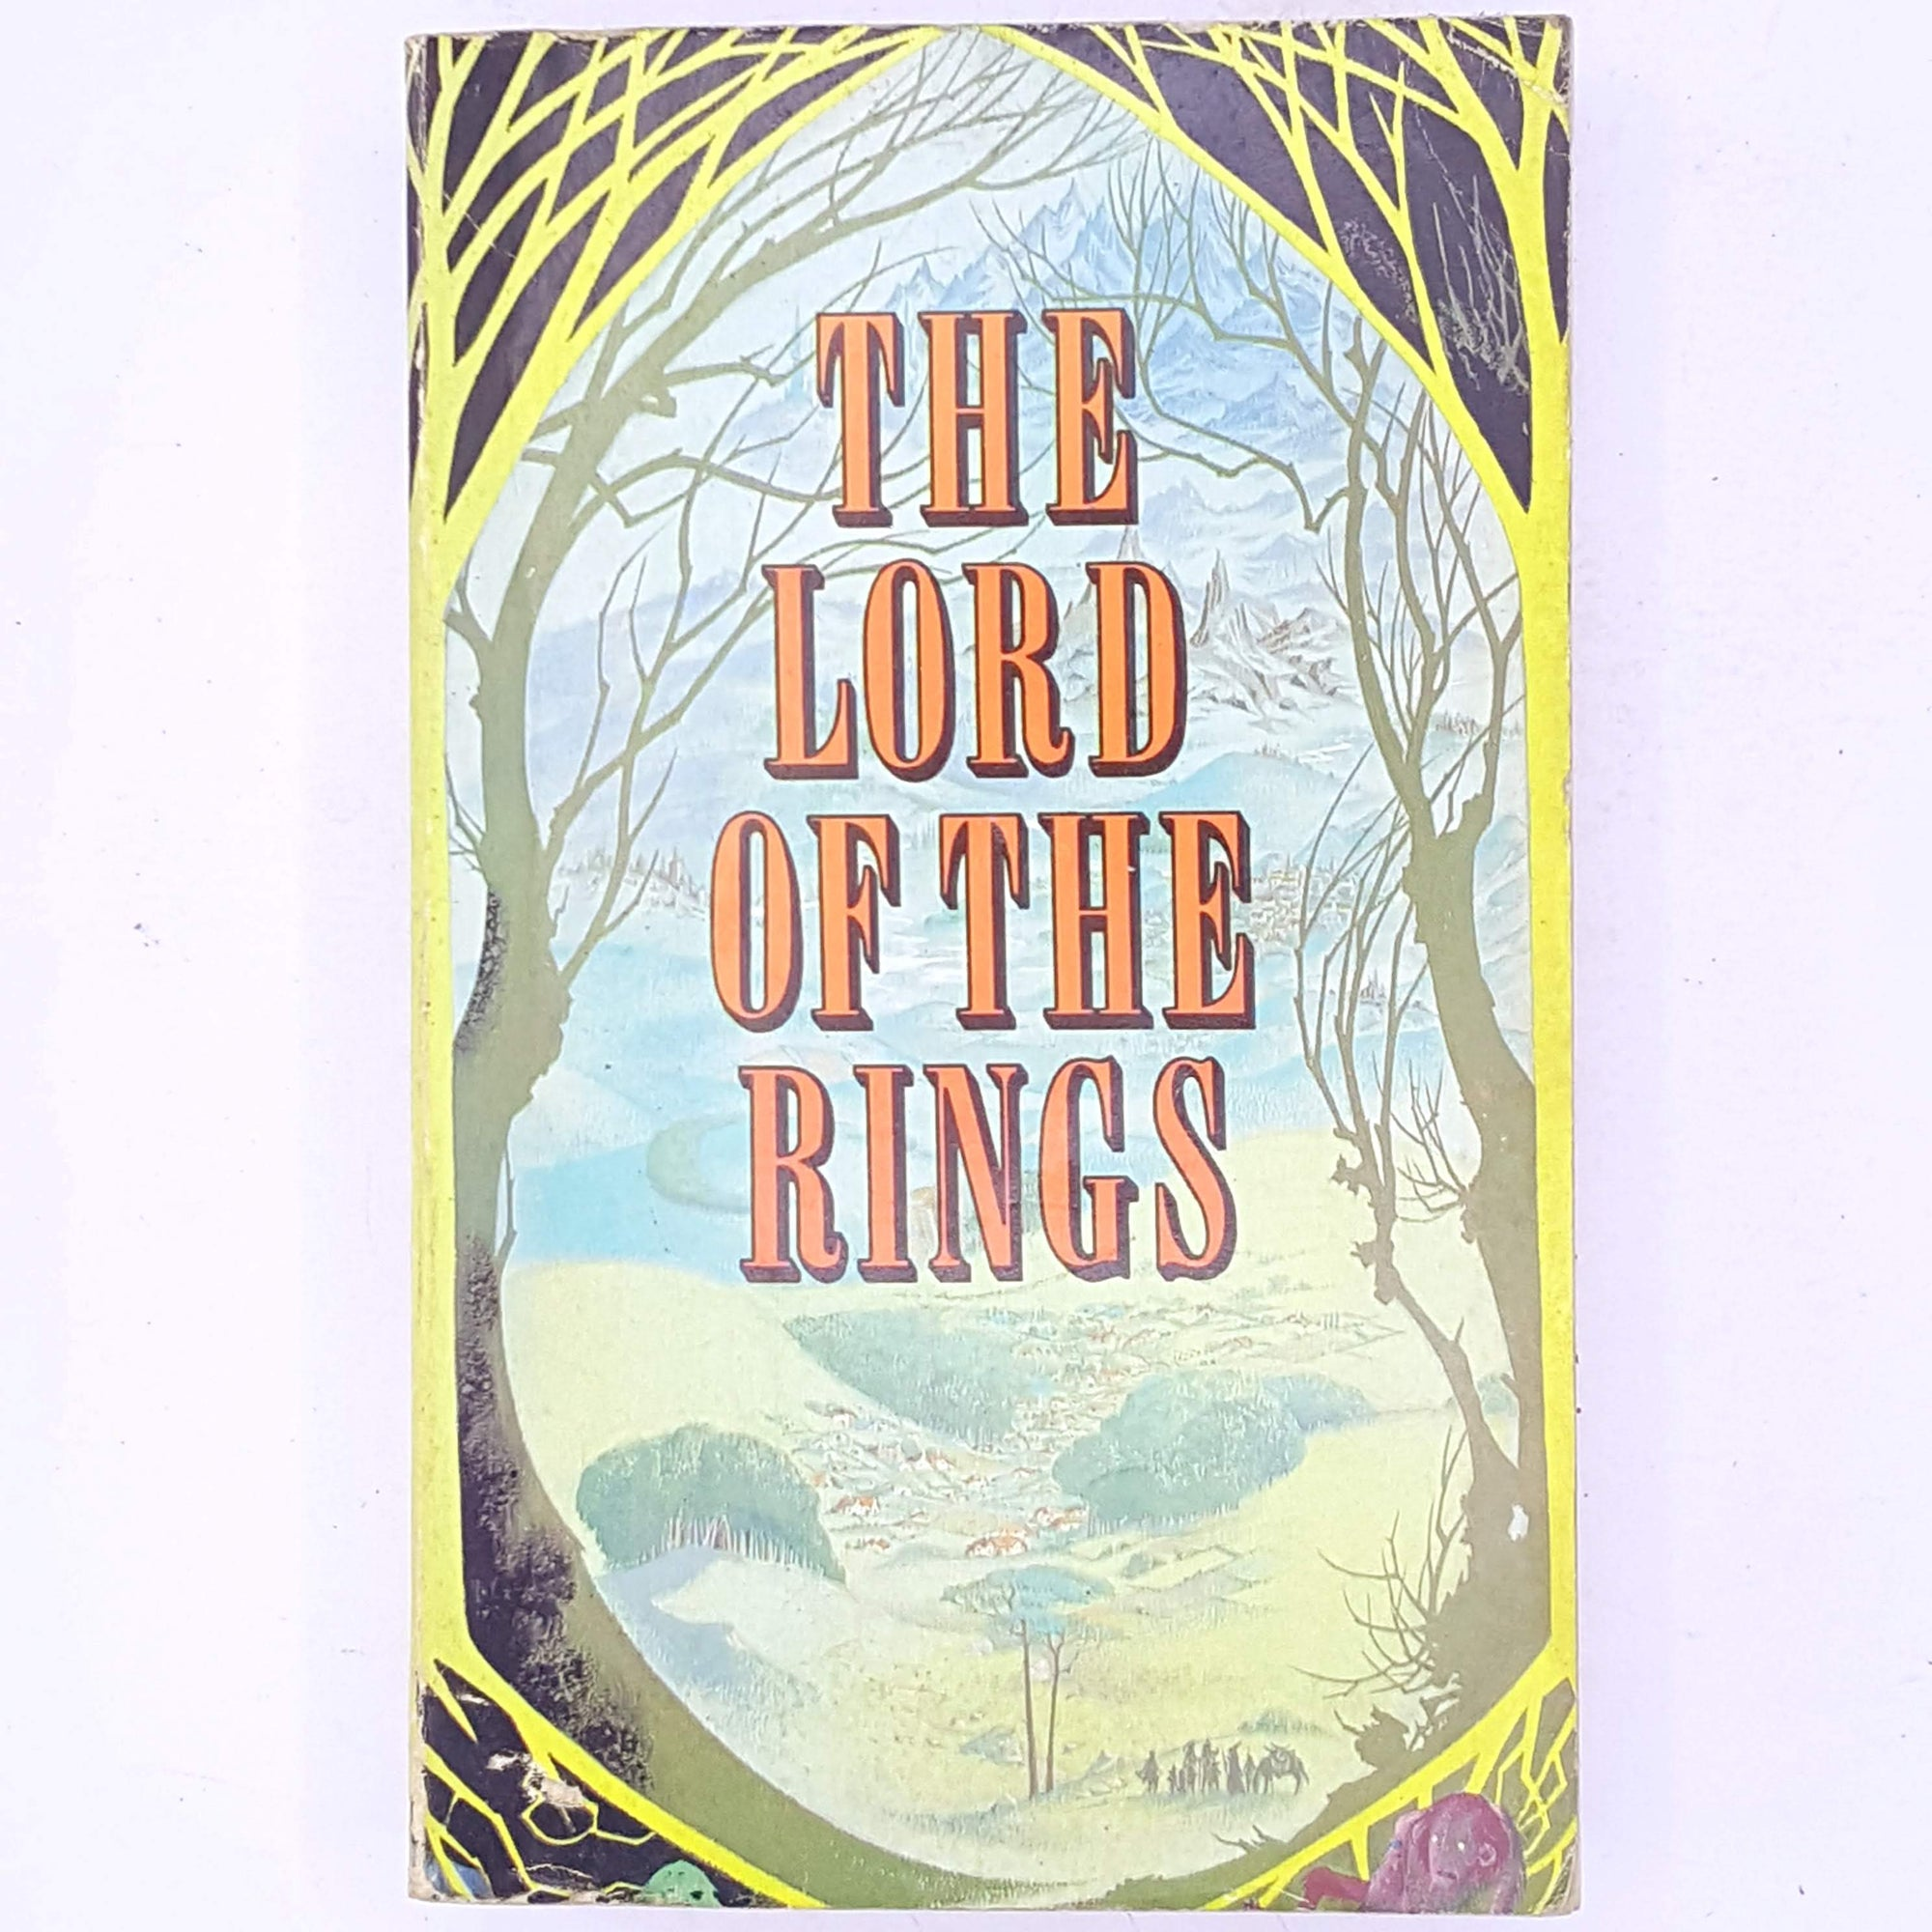 Tolkien's Lord of the Rings